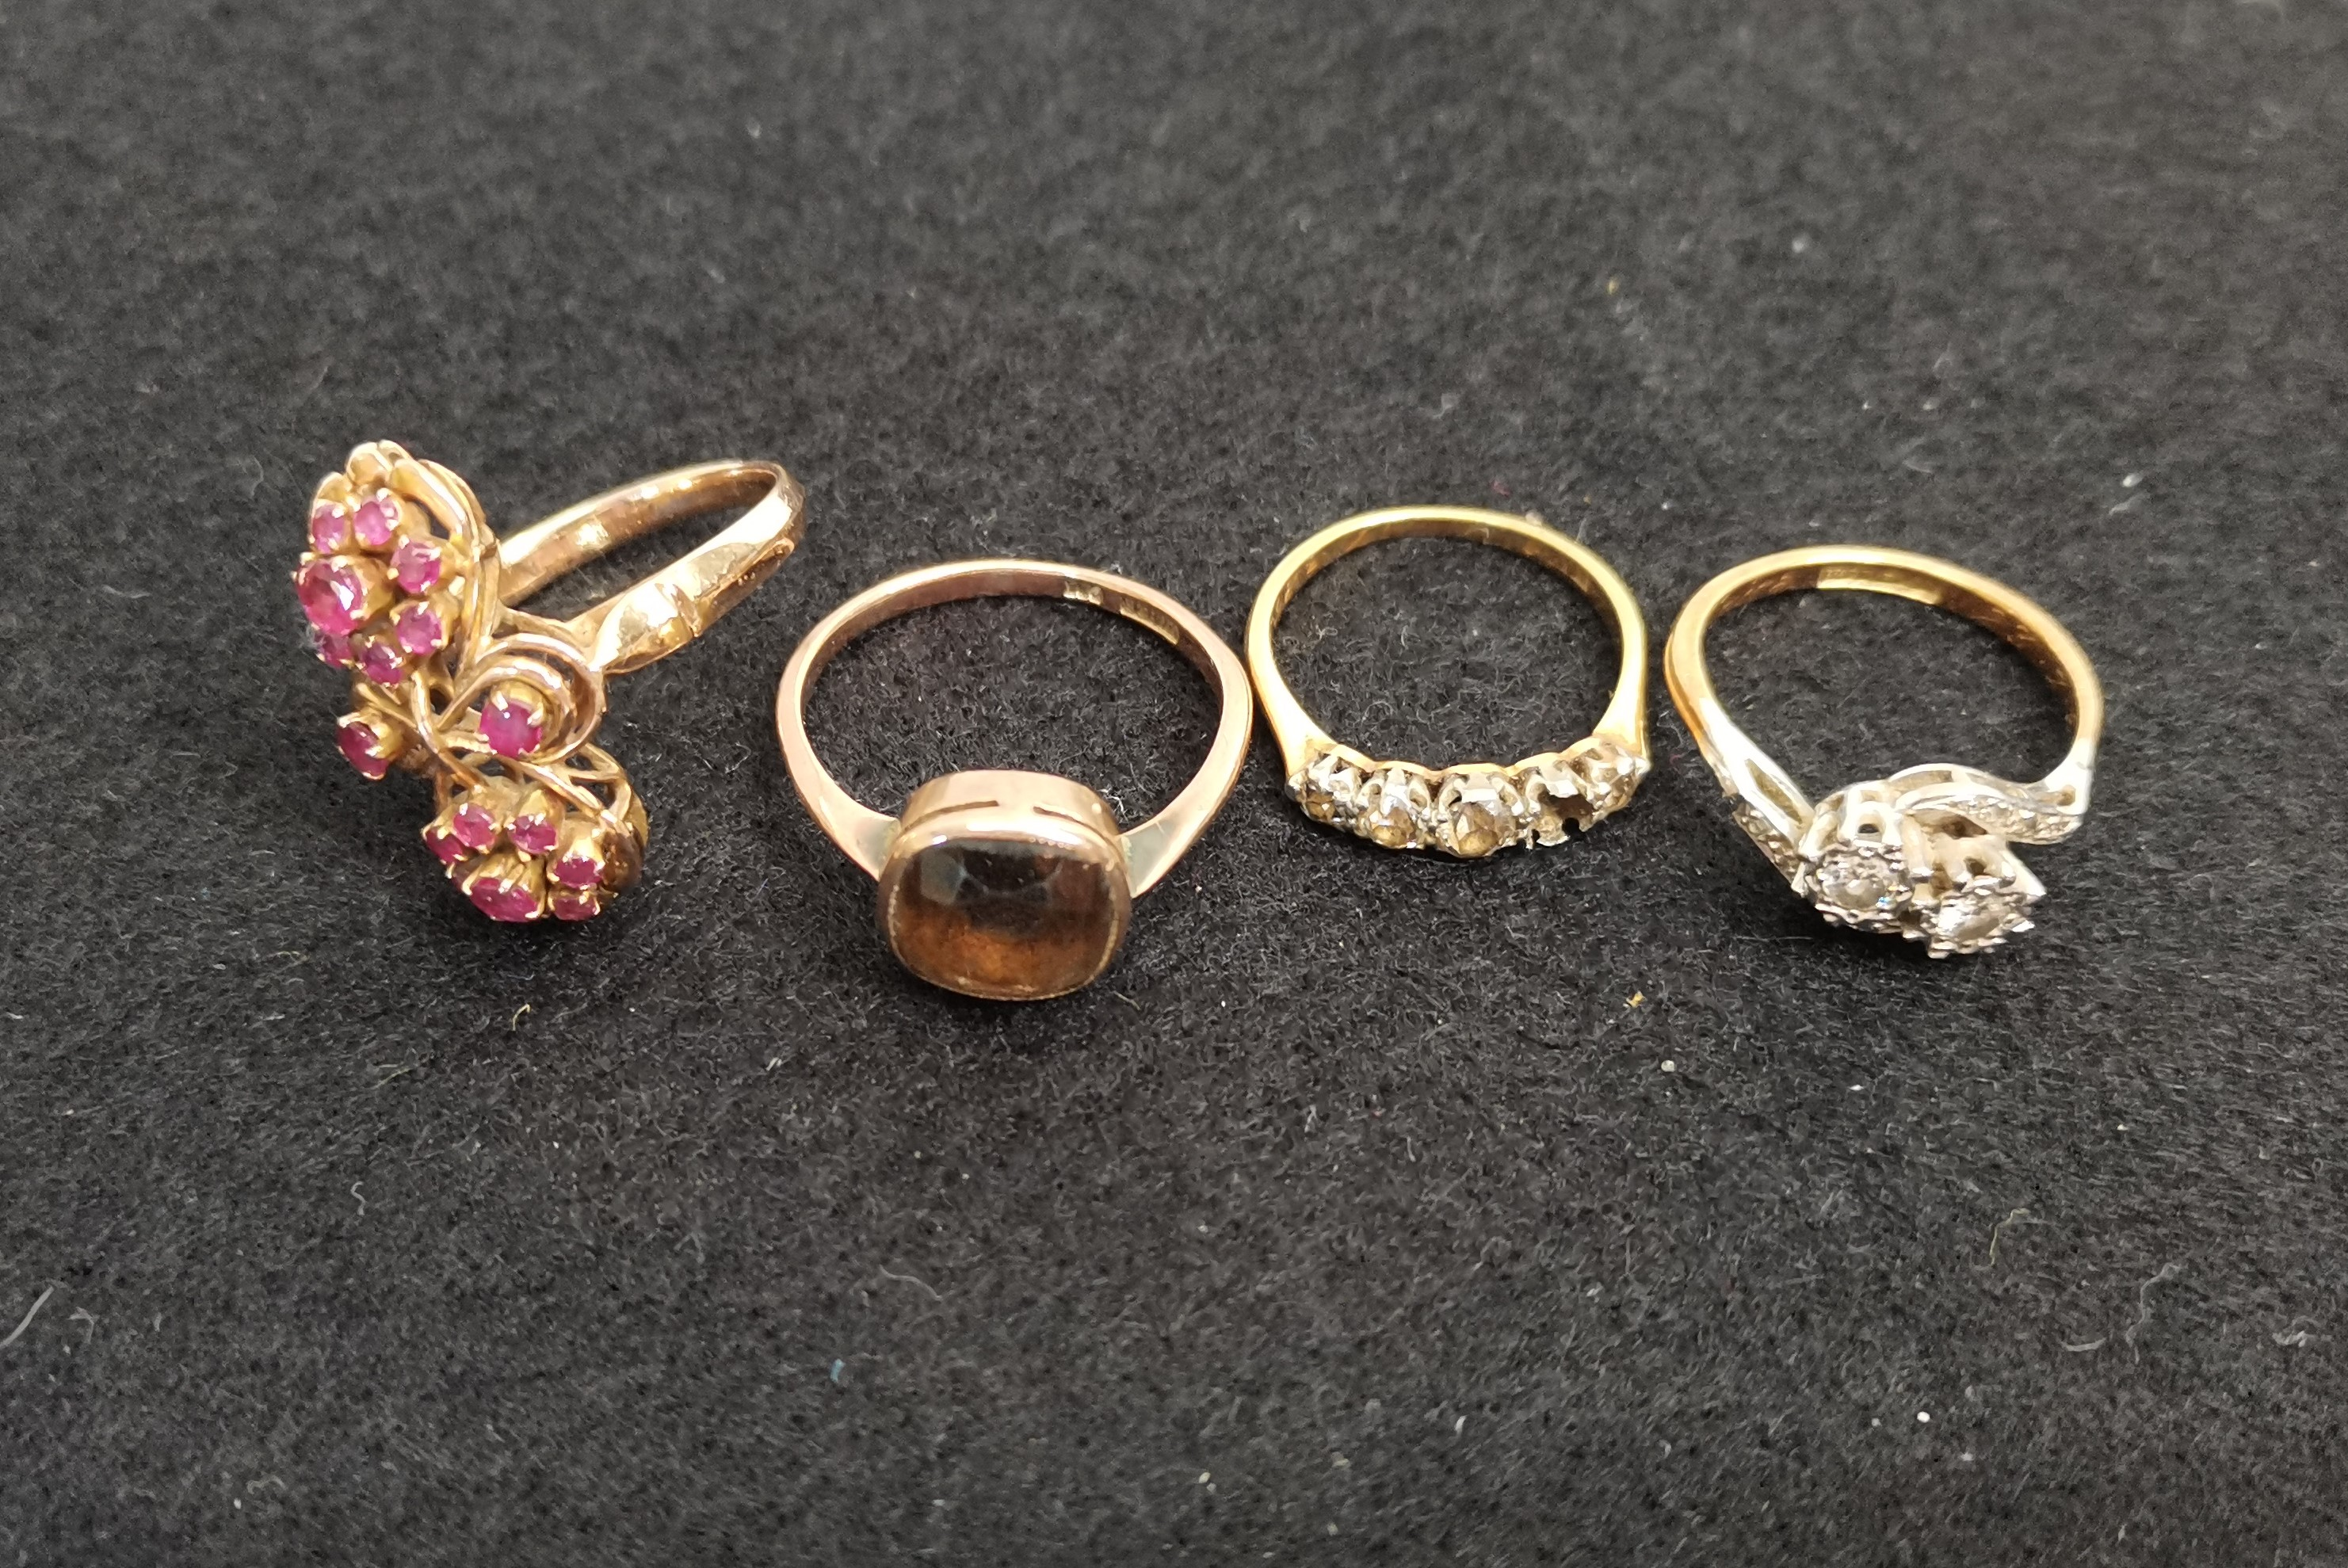 Gold rings etc - Image 2 of 3